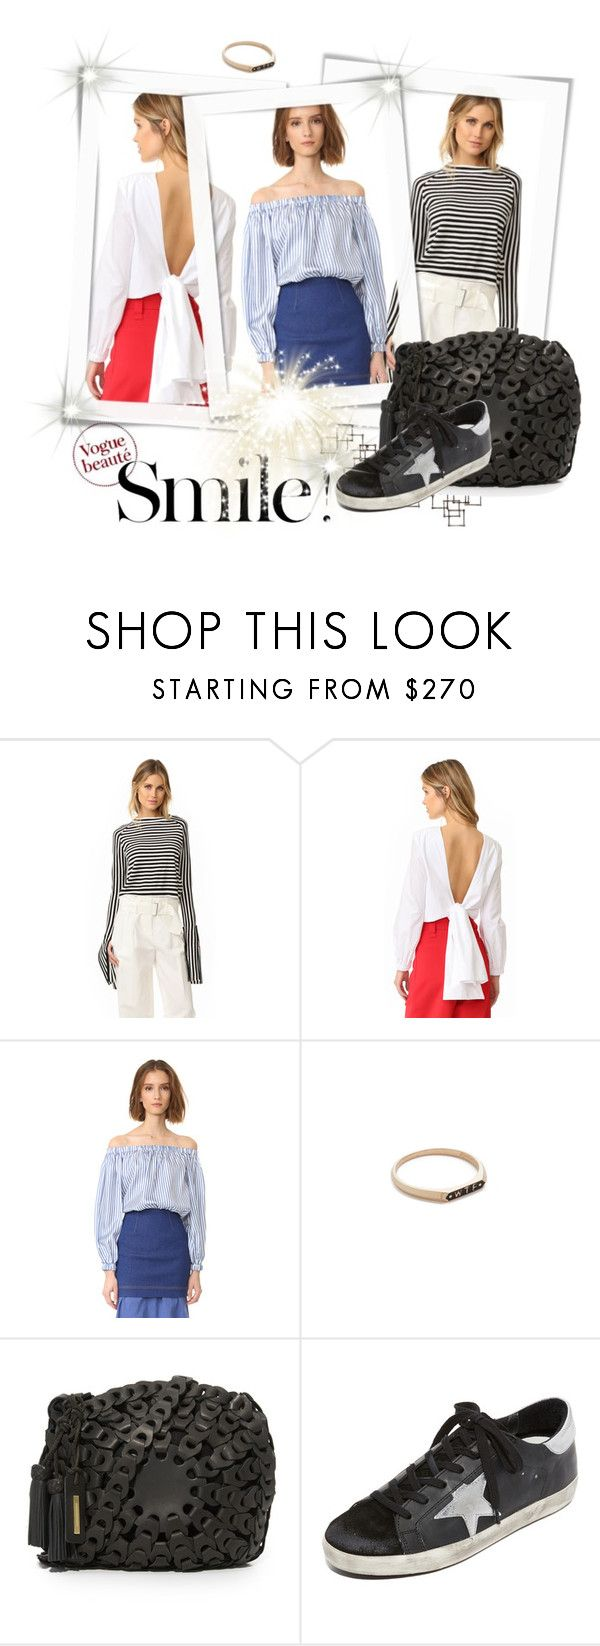 """""""Chic in PAPER London Top!!"""" by stylediva20 on Polyvore featuring Paper London, Nora Kogan, Zimmermann, Golden Goose and Crate and Barrel"""